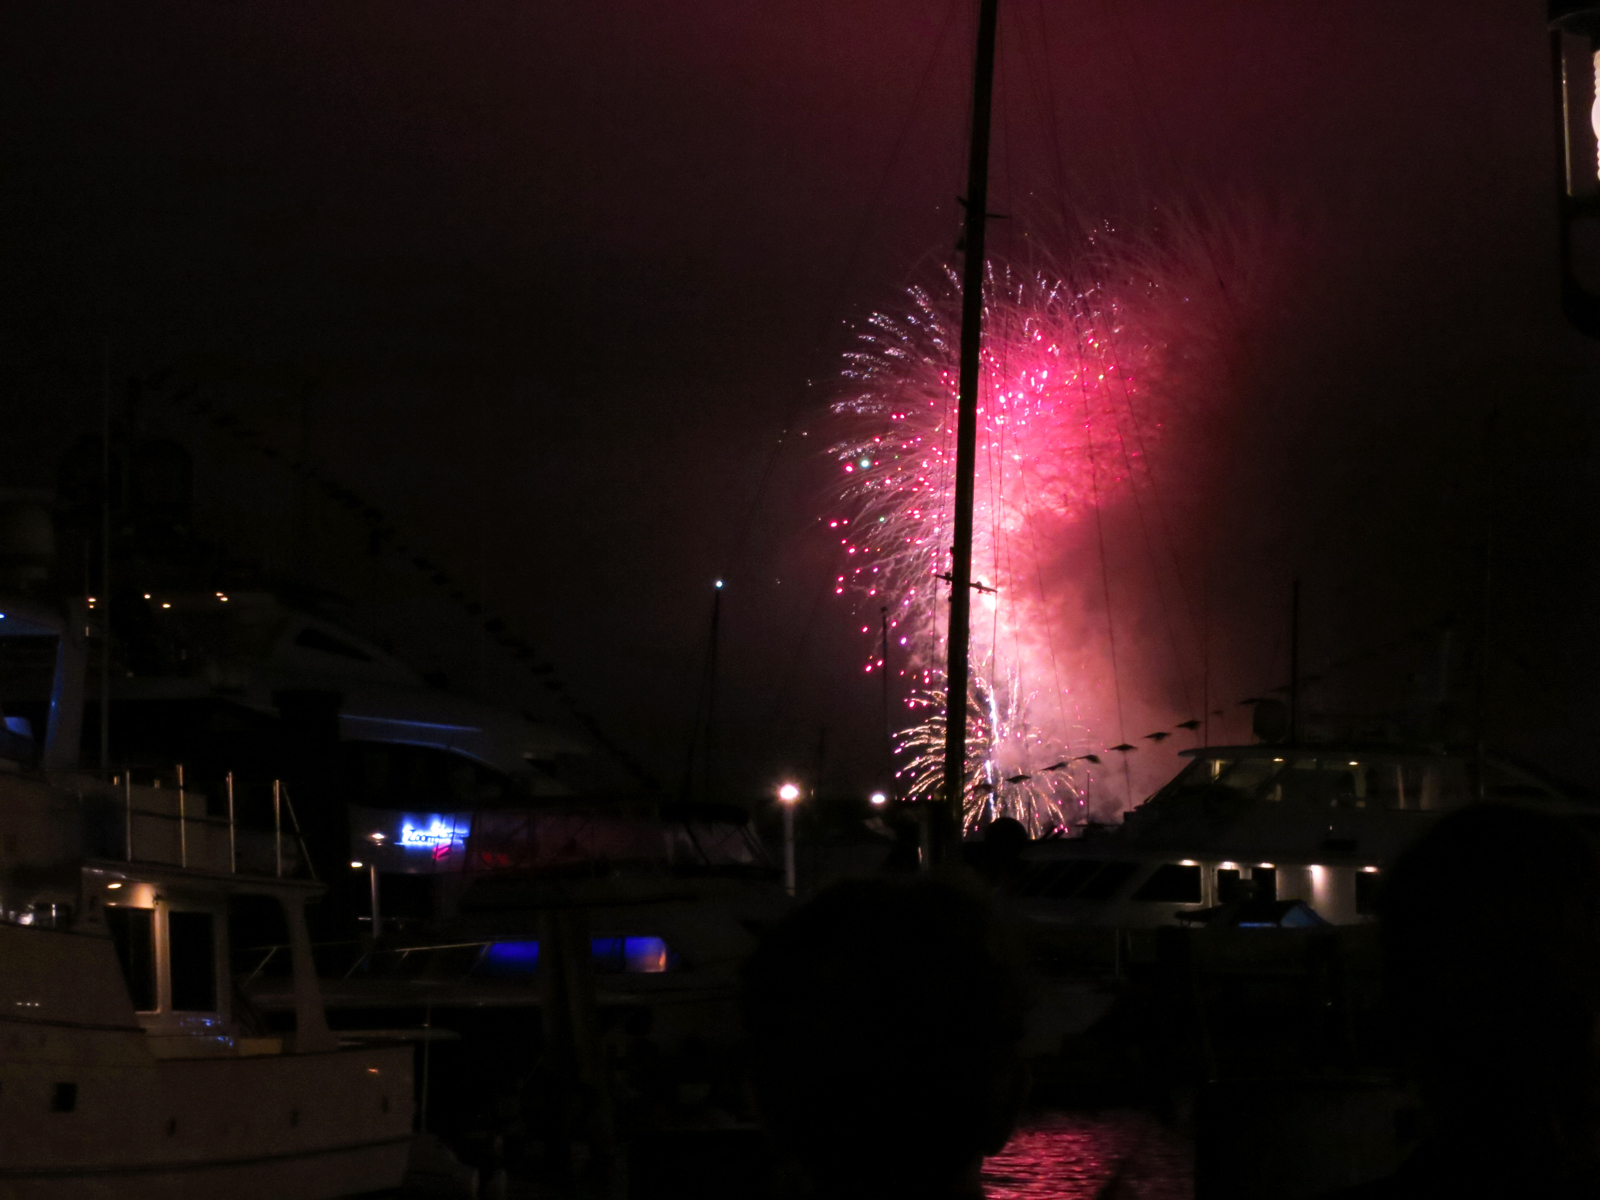 ROCKET'S RED GLARE OVER NEWPORT HARBOR - live. travel. adventure. bless. | The spectacular finale of the Newport Harbor Fireworks display in Newport, RI with stunning light pink and magenta fireworks. Happy 4th of July!